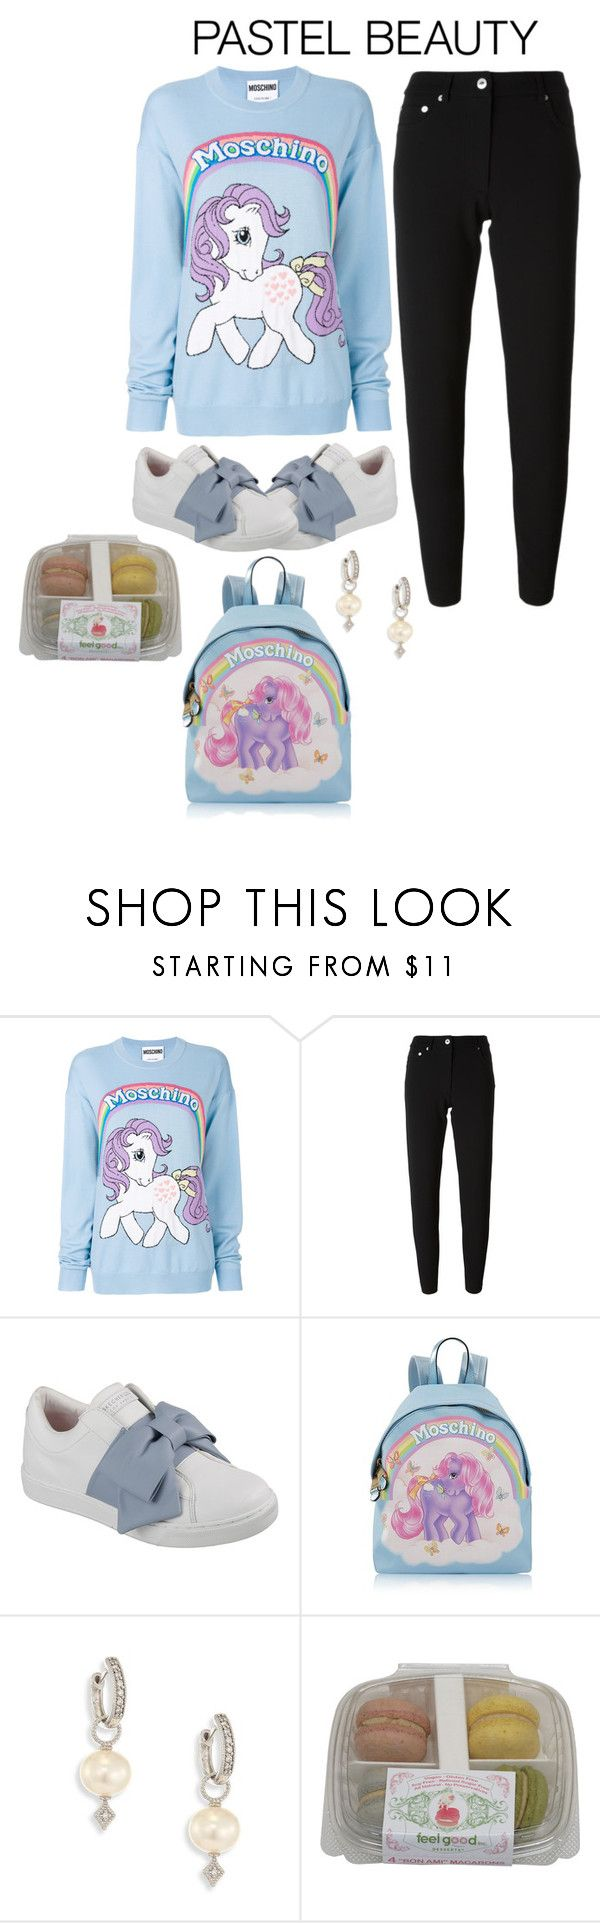 """""""My little pony"""" by perpetto ❤ liked on Polyvore featuring Moschino, Skechers, JudeFrances and pastelsweaters"""